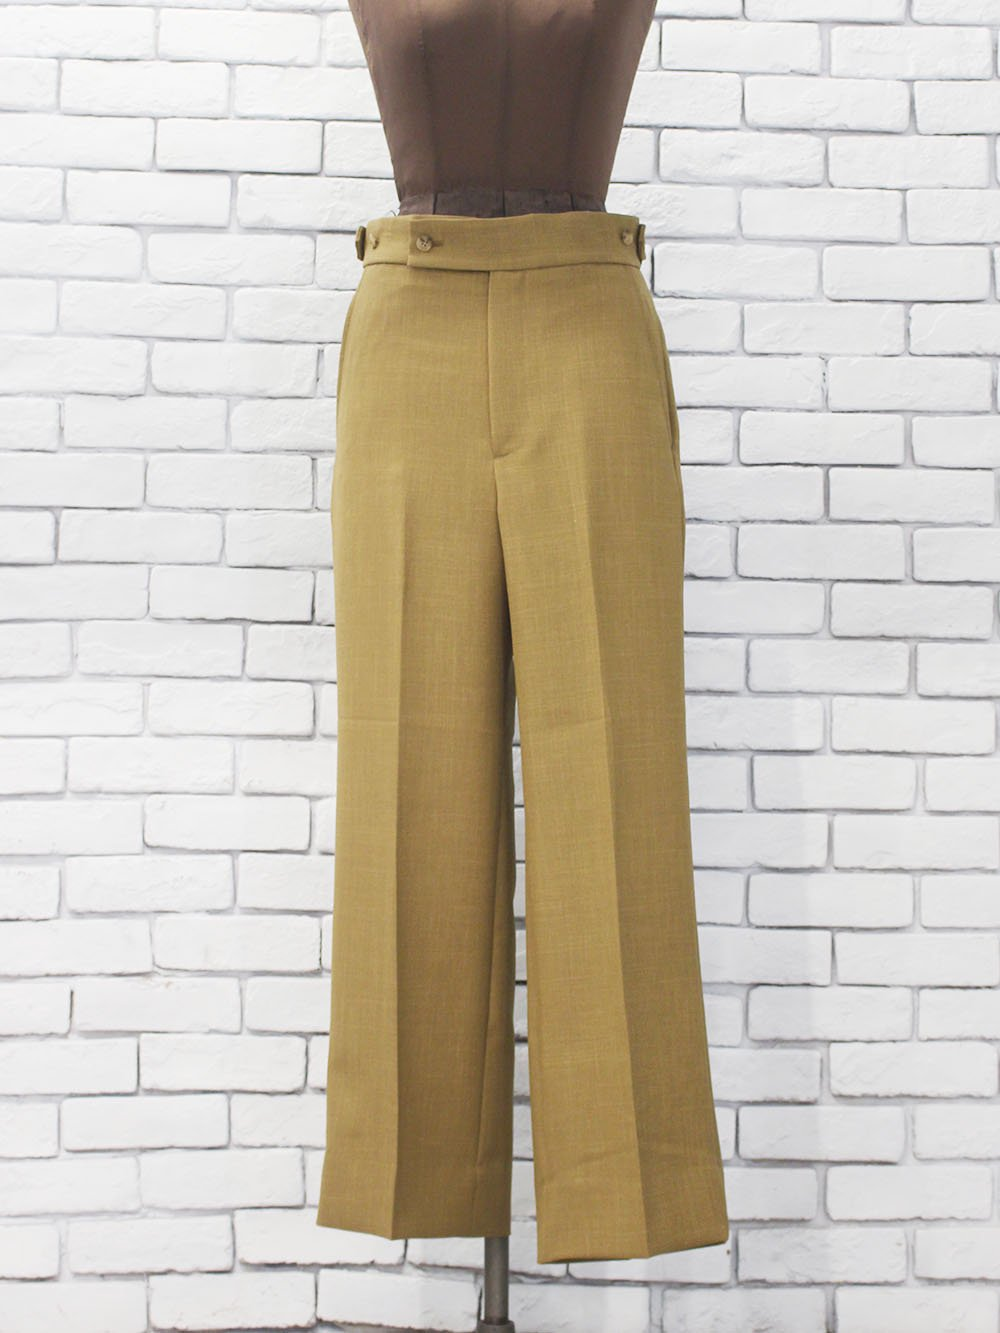 "<img class='new_mark_img1' src='https://img.shop-pro.jp/img/new/icons8.gif' style='border:none;display:inline;margin:0px;padding:0px;width:auto;' />Needles "" Side Tab Trouser - Pony Dobby Twill """